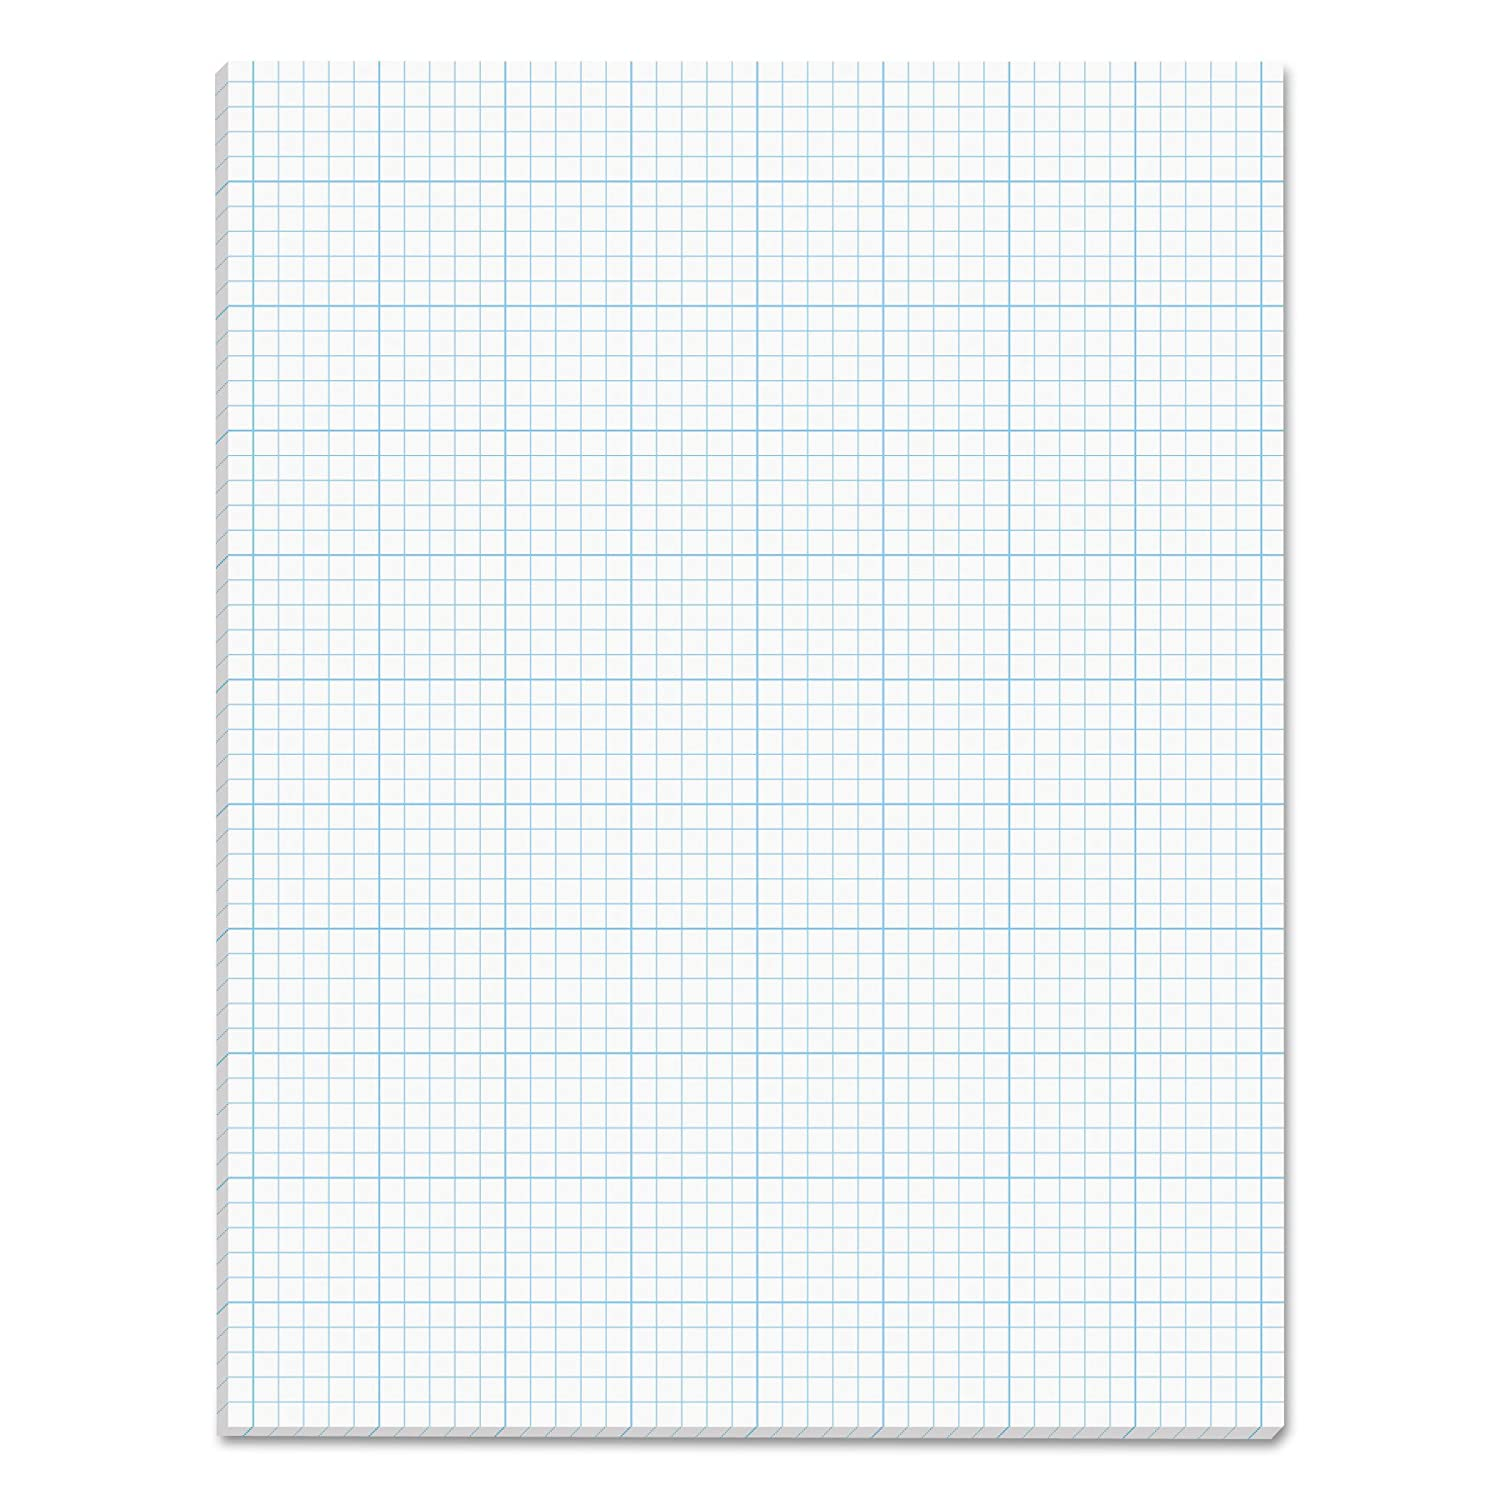 TOPS Cross Section Pad, 1 Pad, 10 Squares/Inch, Quadrille Rule, Letter Size, White, 50 Sheets/Pad, 1 Pad (35101)